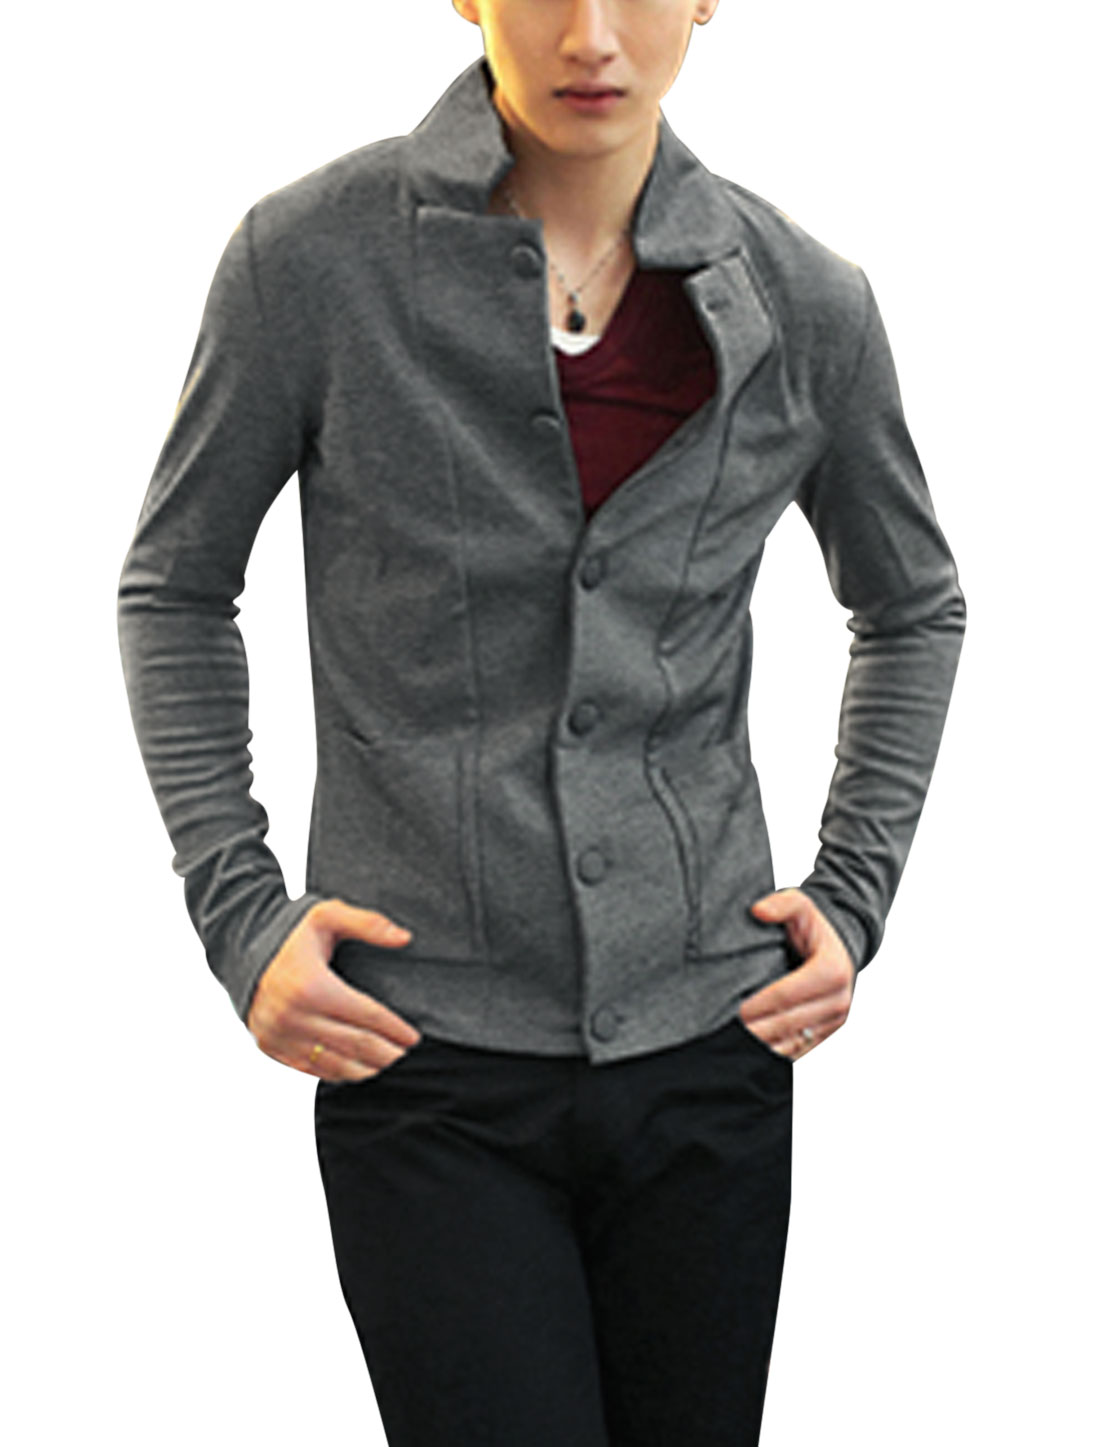 Men Button Closure Front Turn Down Collar Stylish Jacket Dark Gray M